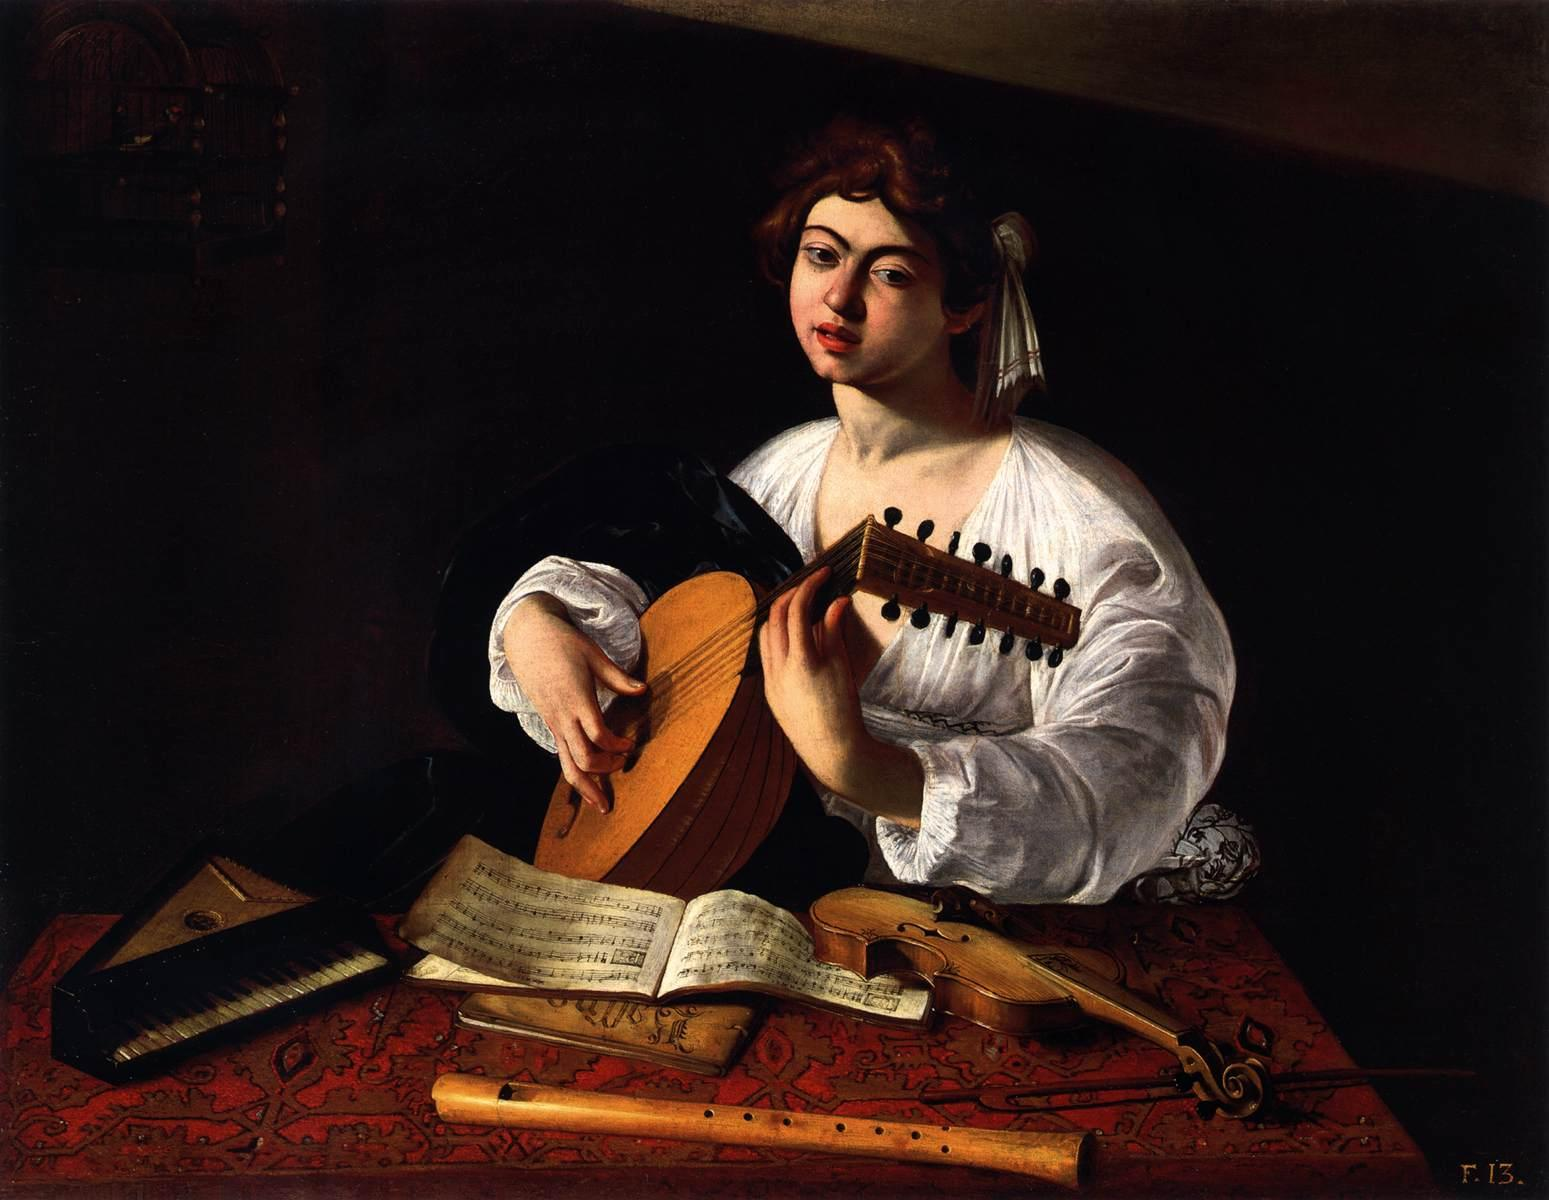 The Lute Society : Heritage & Culture